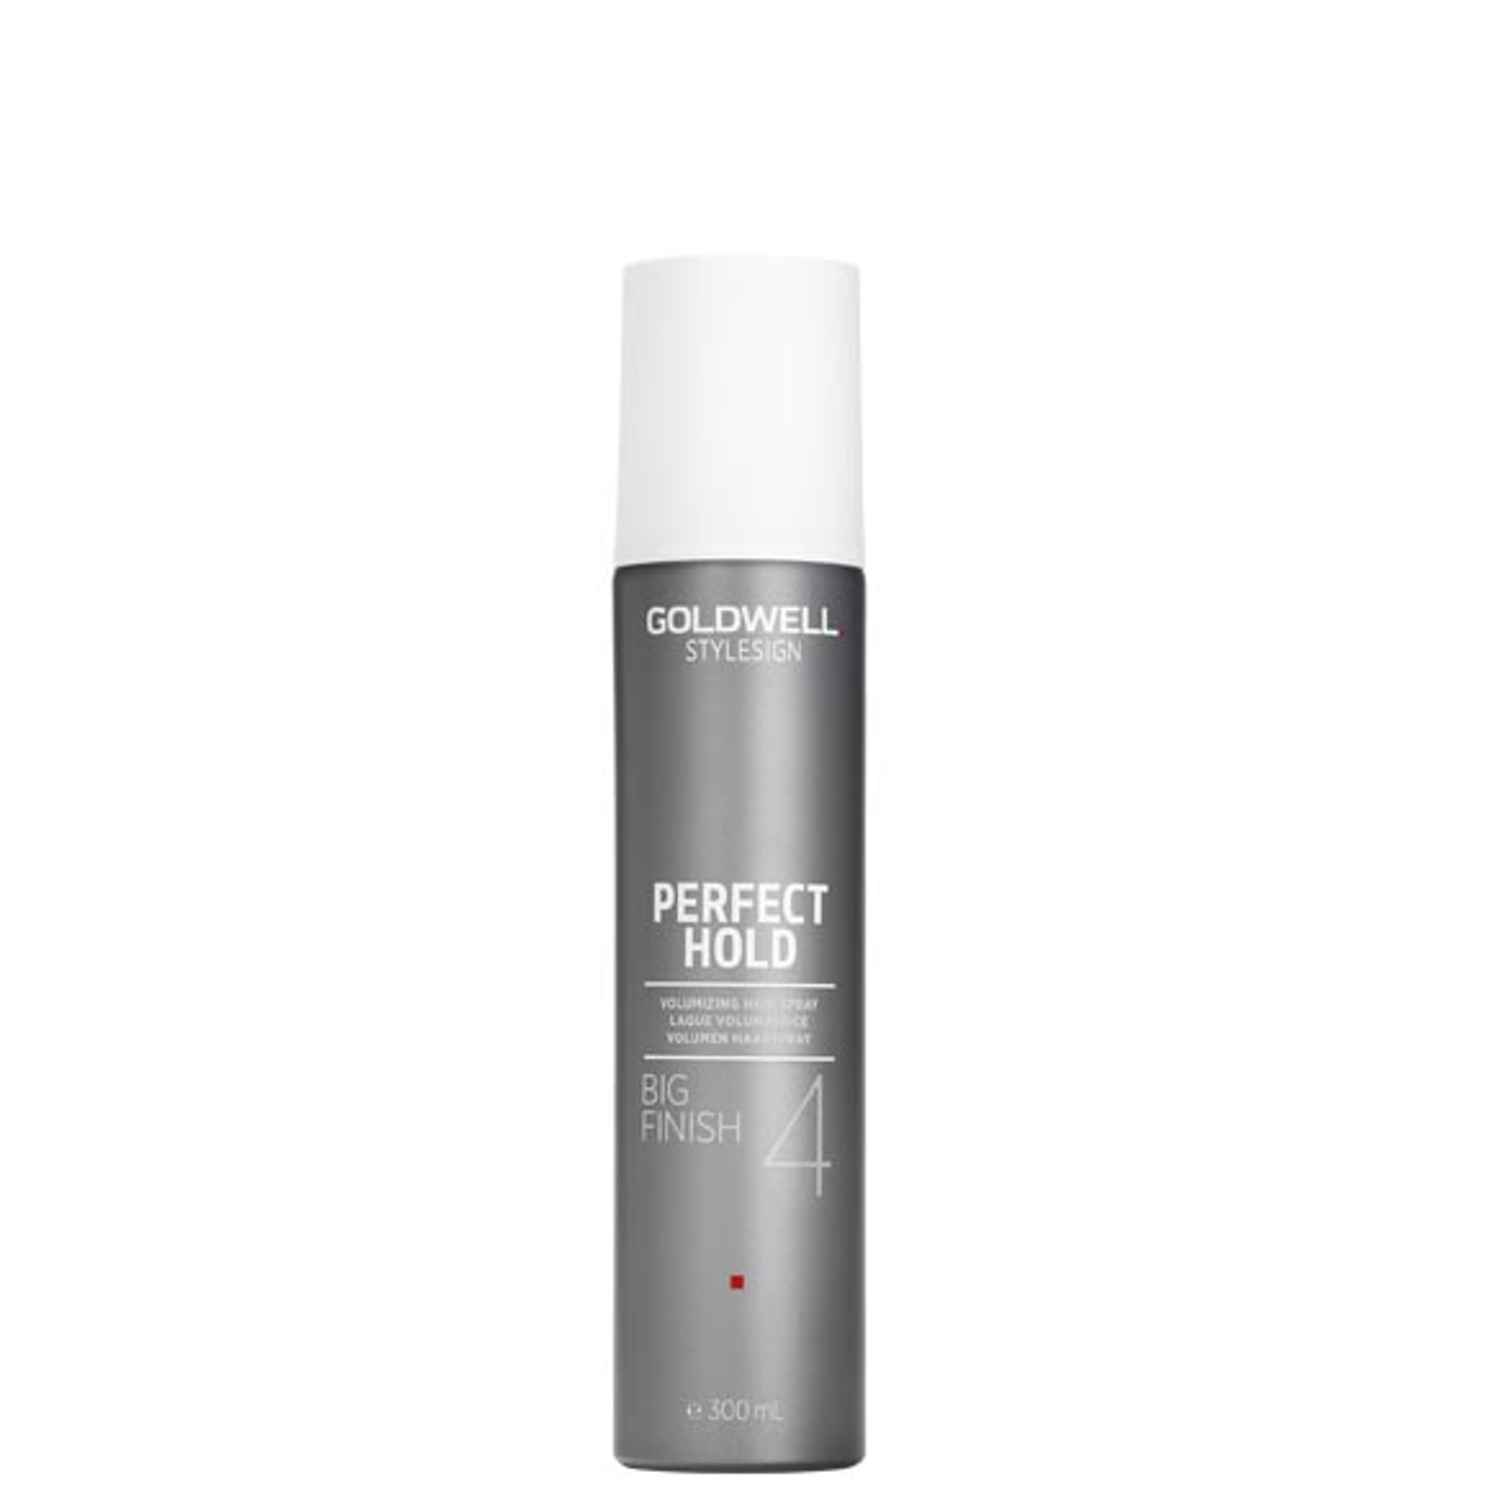 GOLDWELL Style Sign Perfect Hold BIG FINISH 300 ml